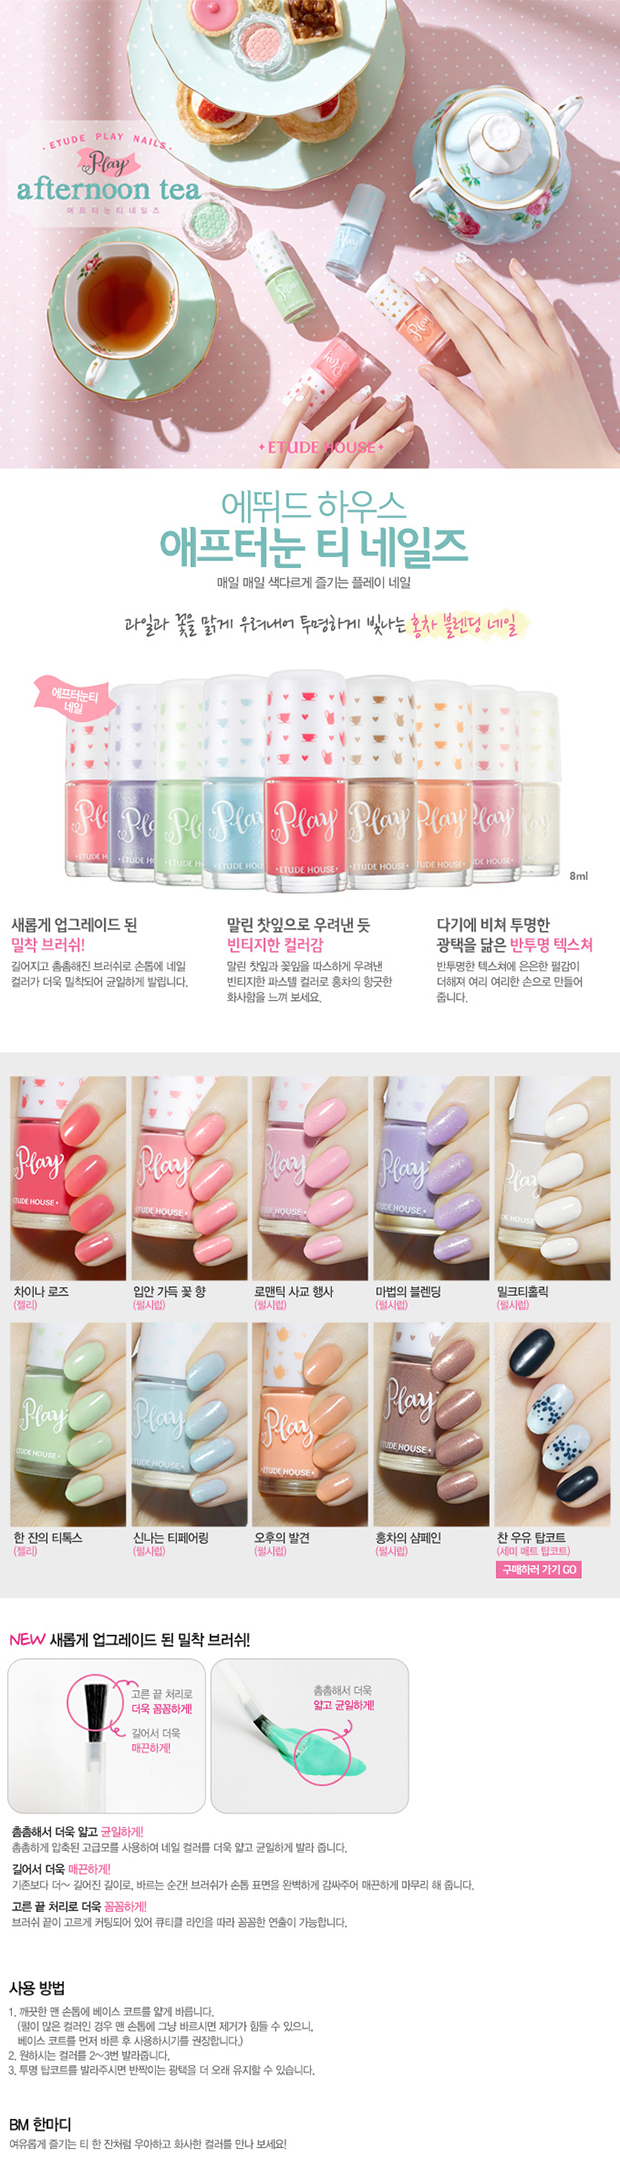 etude-house-afternoon-tea-nails-8ml-desc.jpg